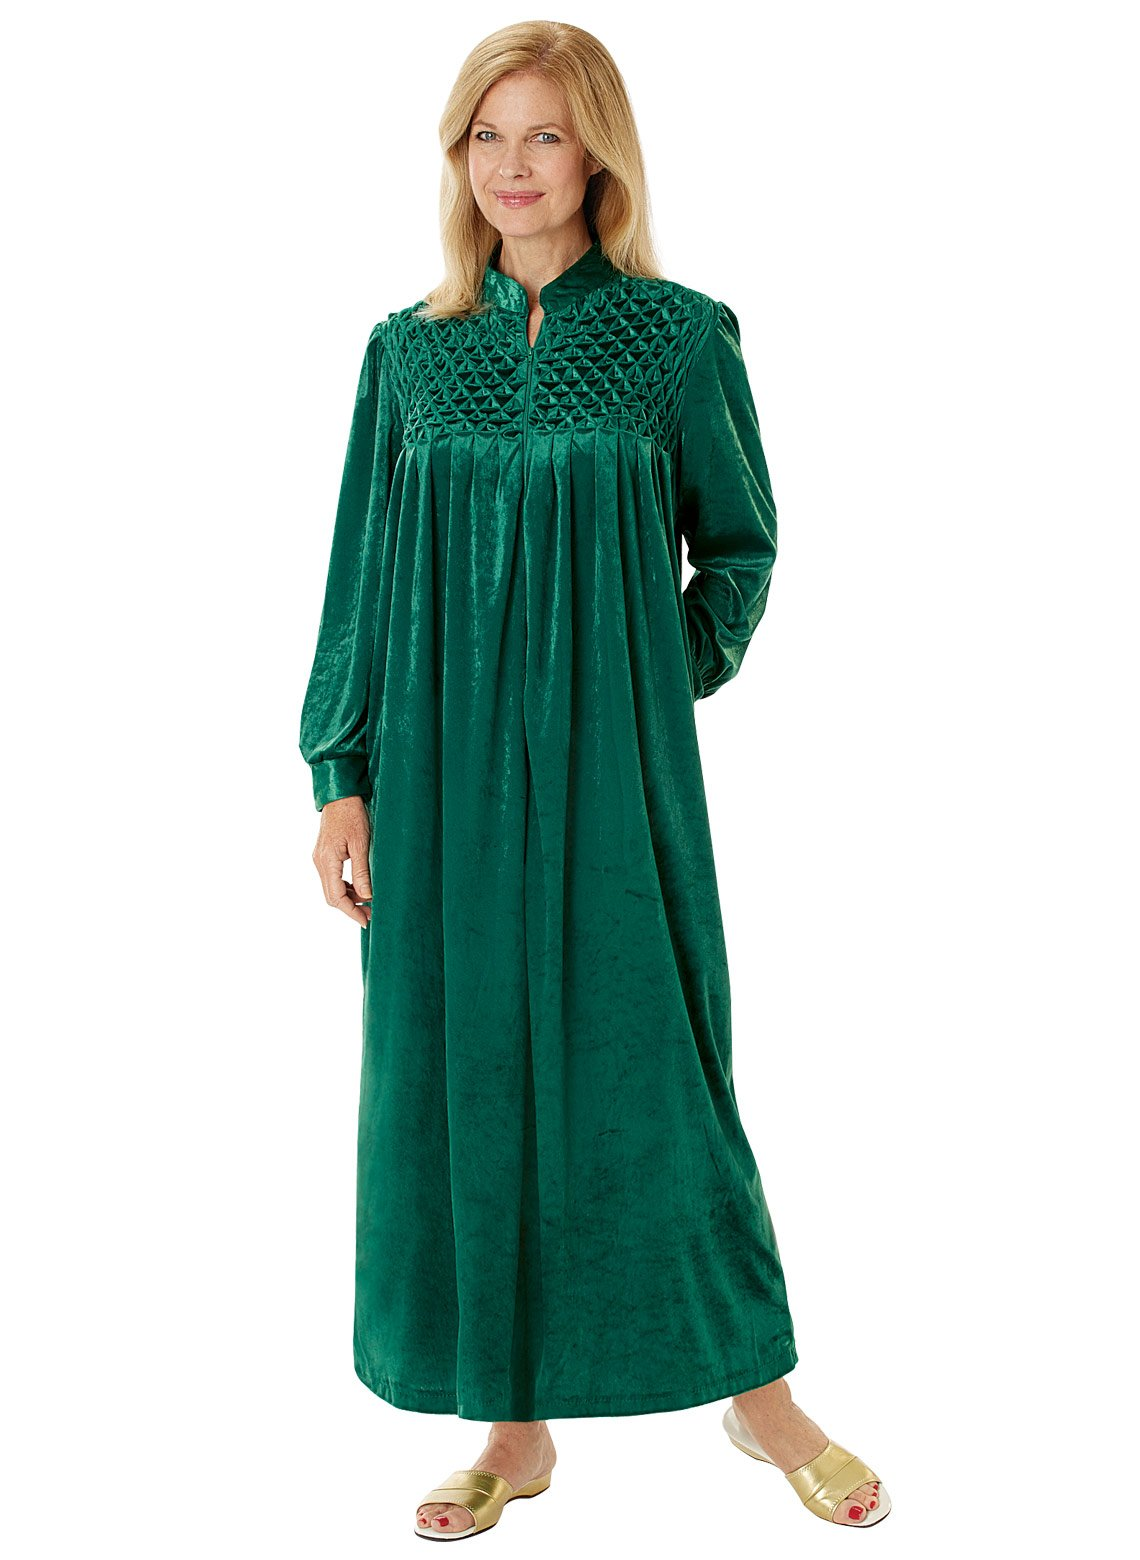 Carol Wright Gifts Long Zip-Front Robe, Emerald, Size Extra Large (2X)